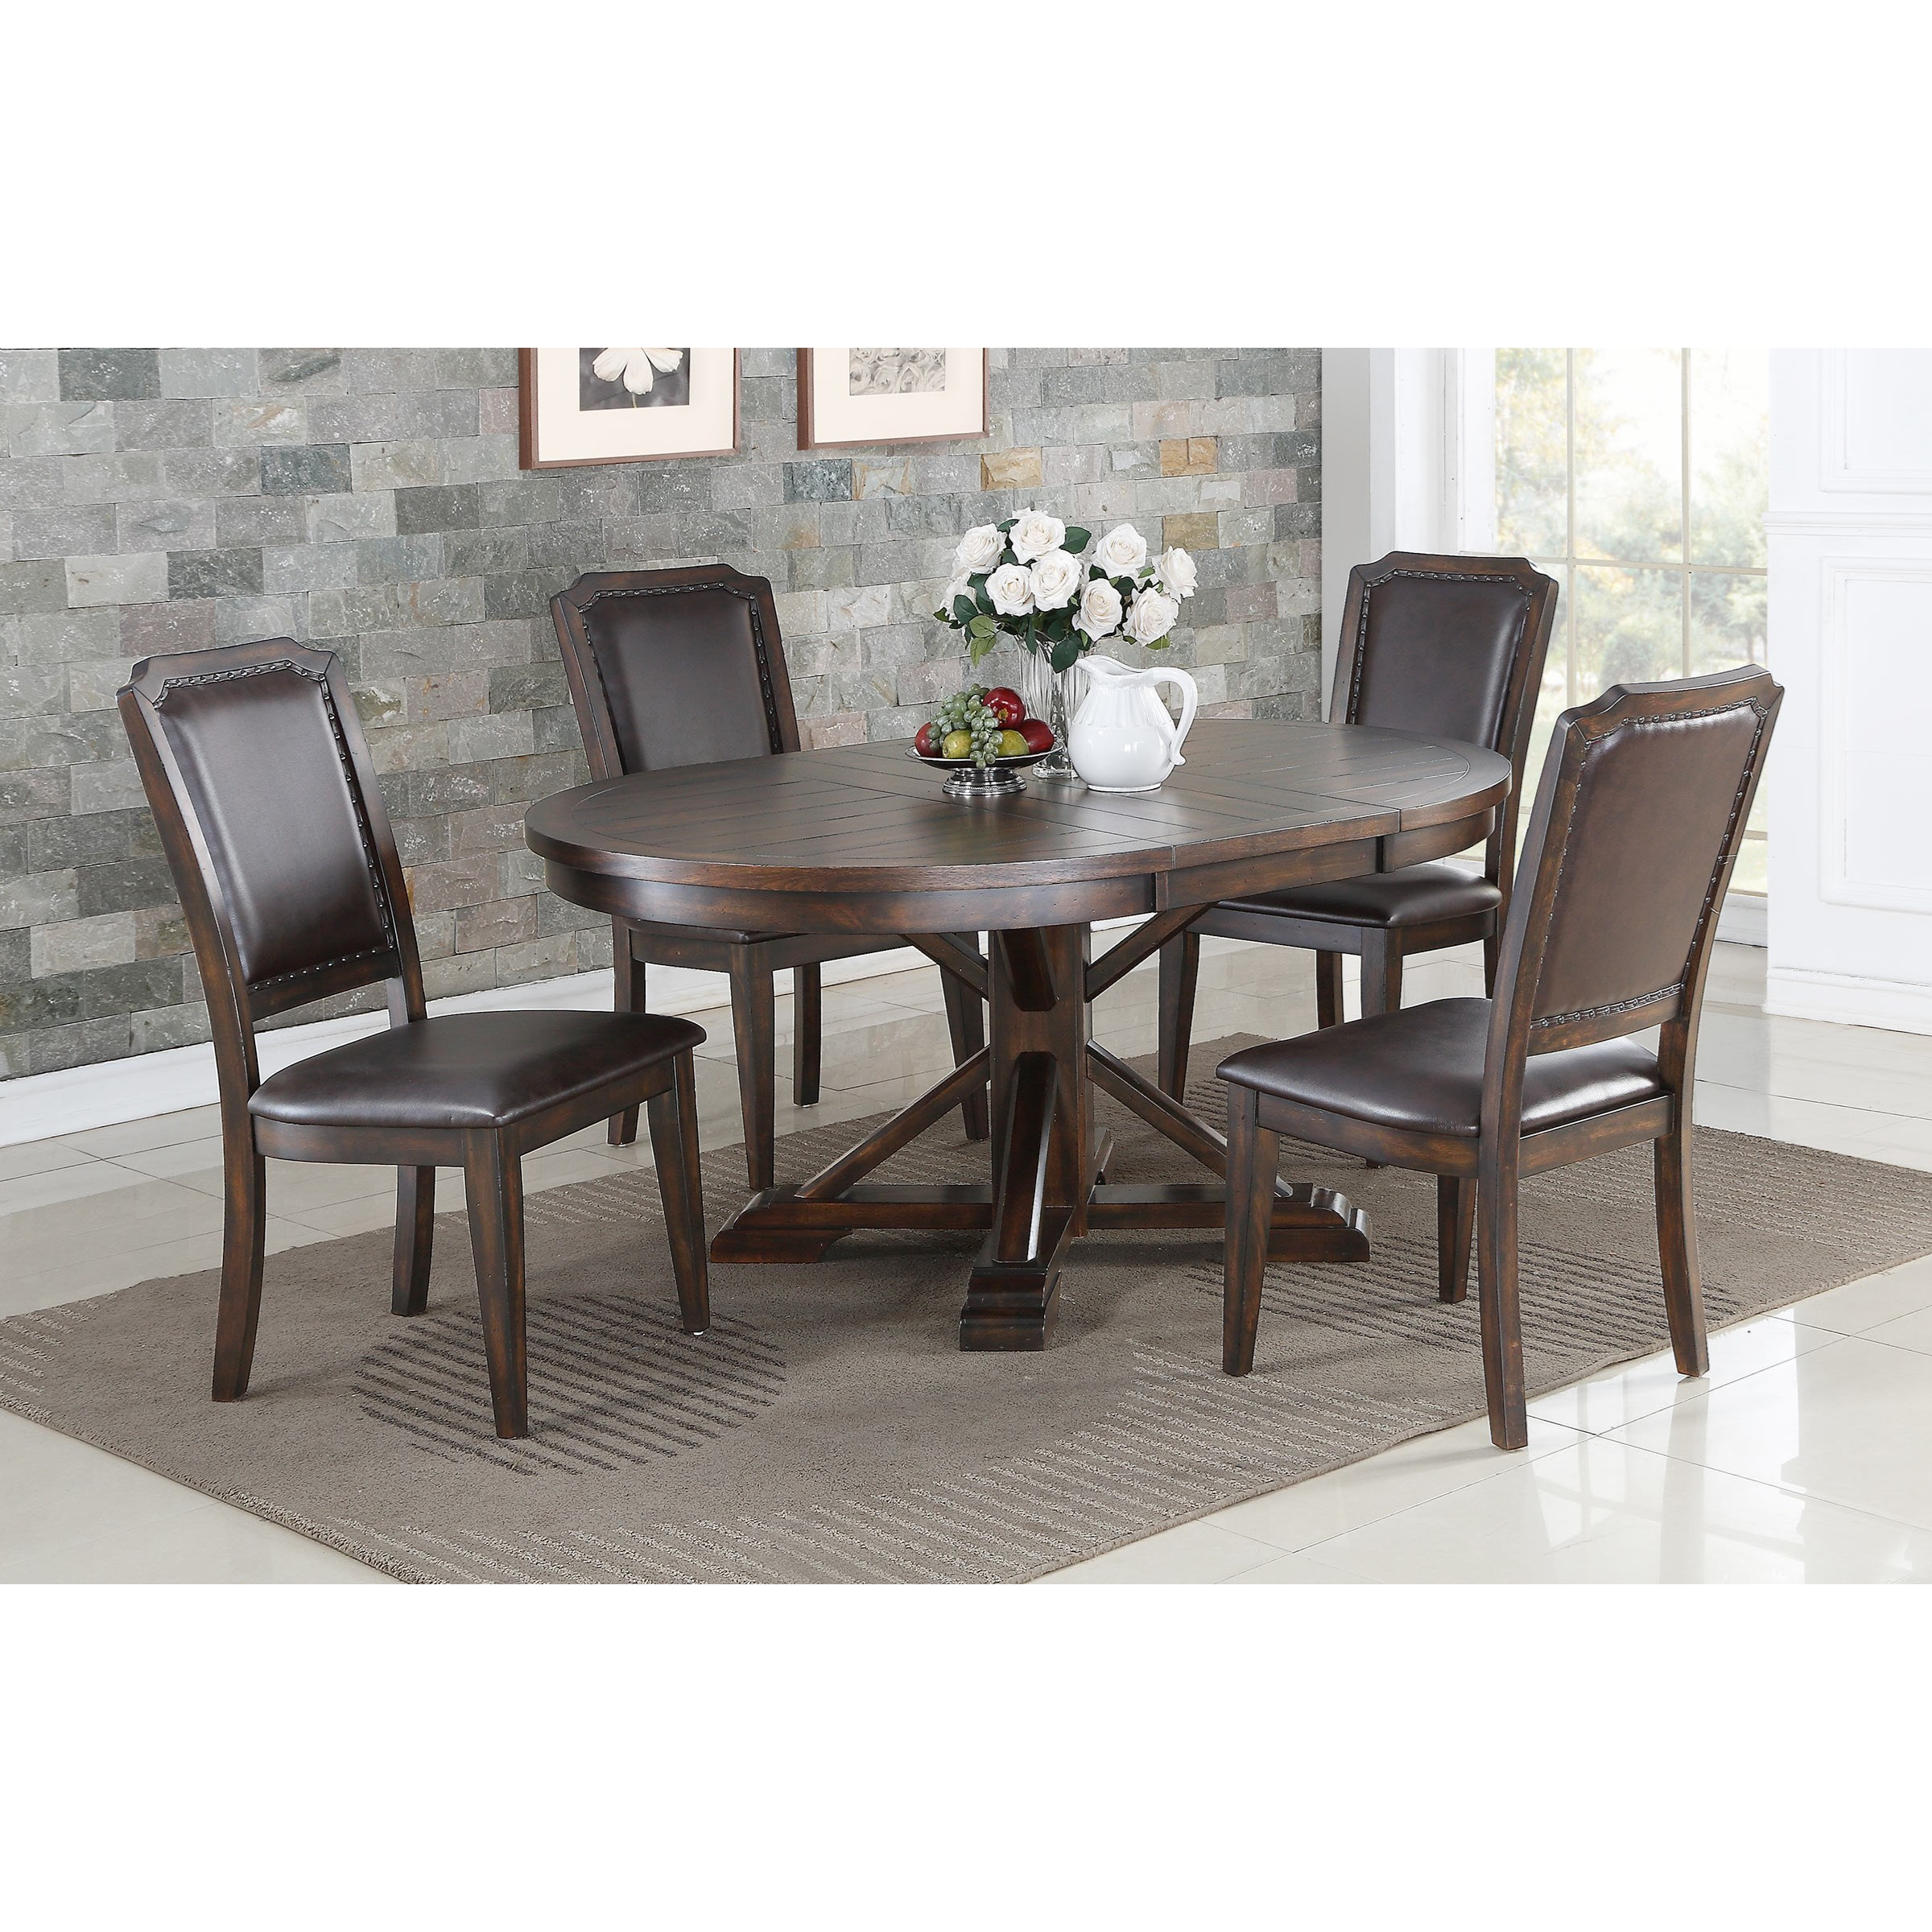 Winners Only Montreal Transitional 5 Piece Pedestal Table And Chair Set Sheely S Furniture Appliance Dining 5 Piece Sets